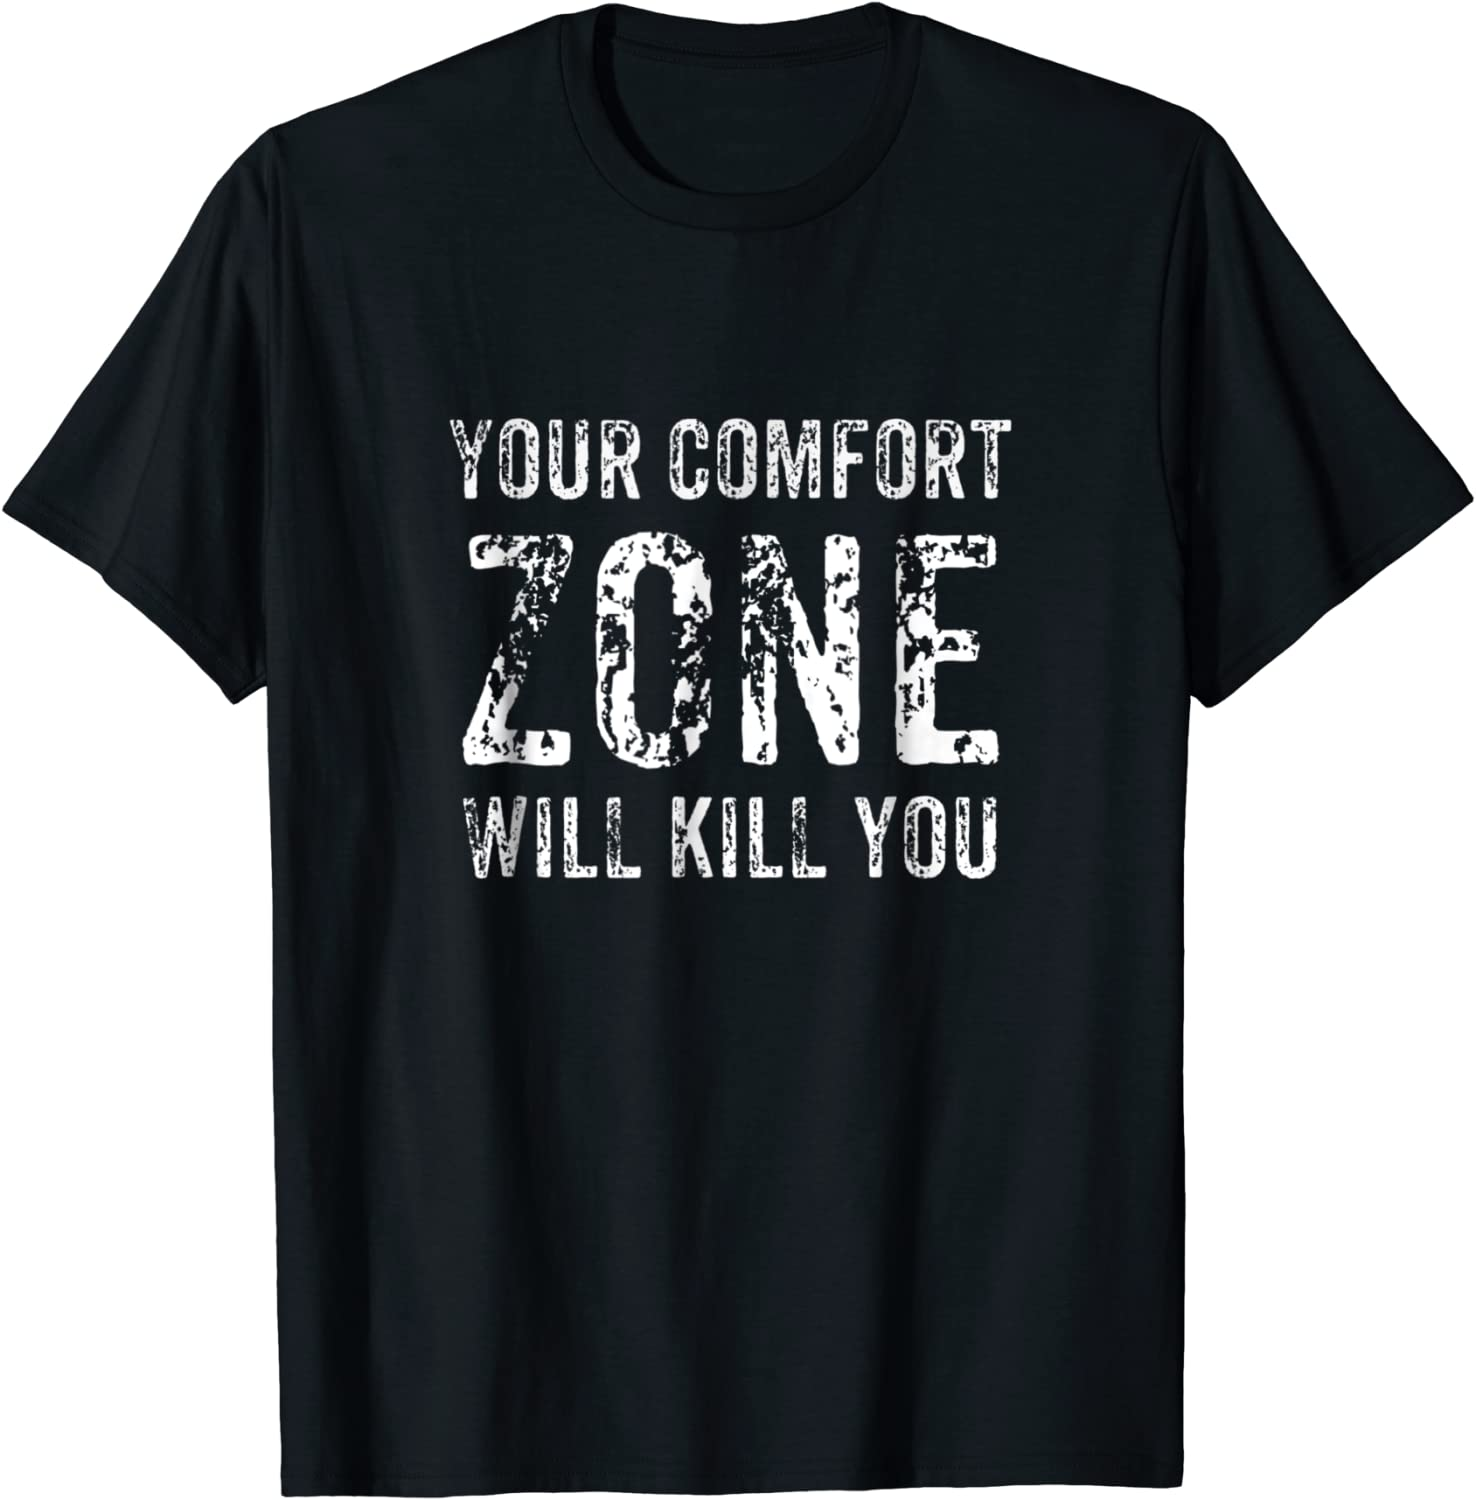 Men/'s Your Comfort Zone Will Kill You Black Tank Top Fitness Gym Workout WT V410